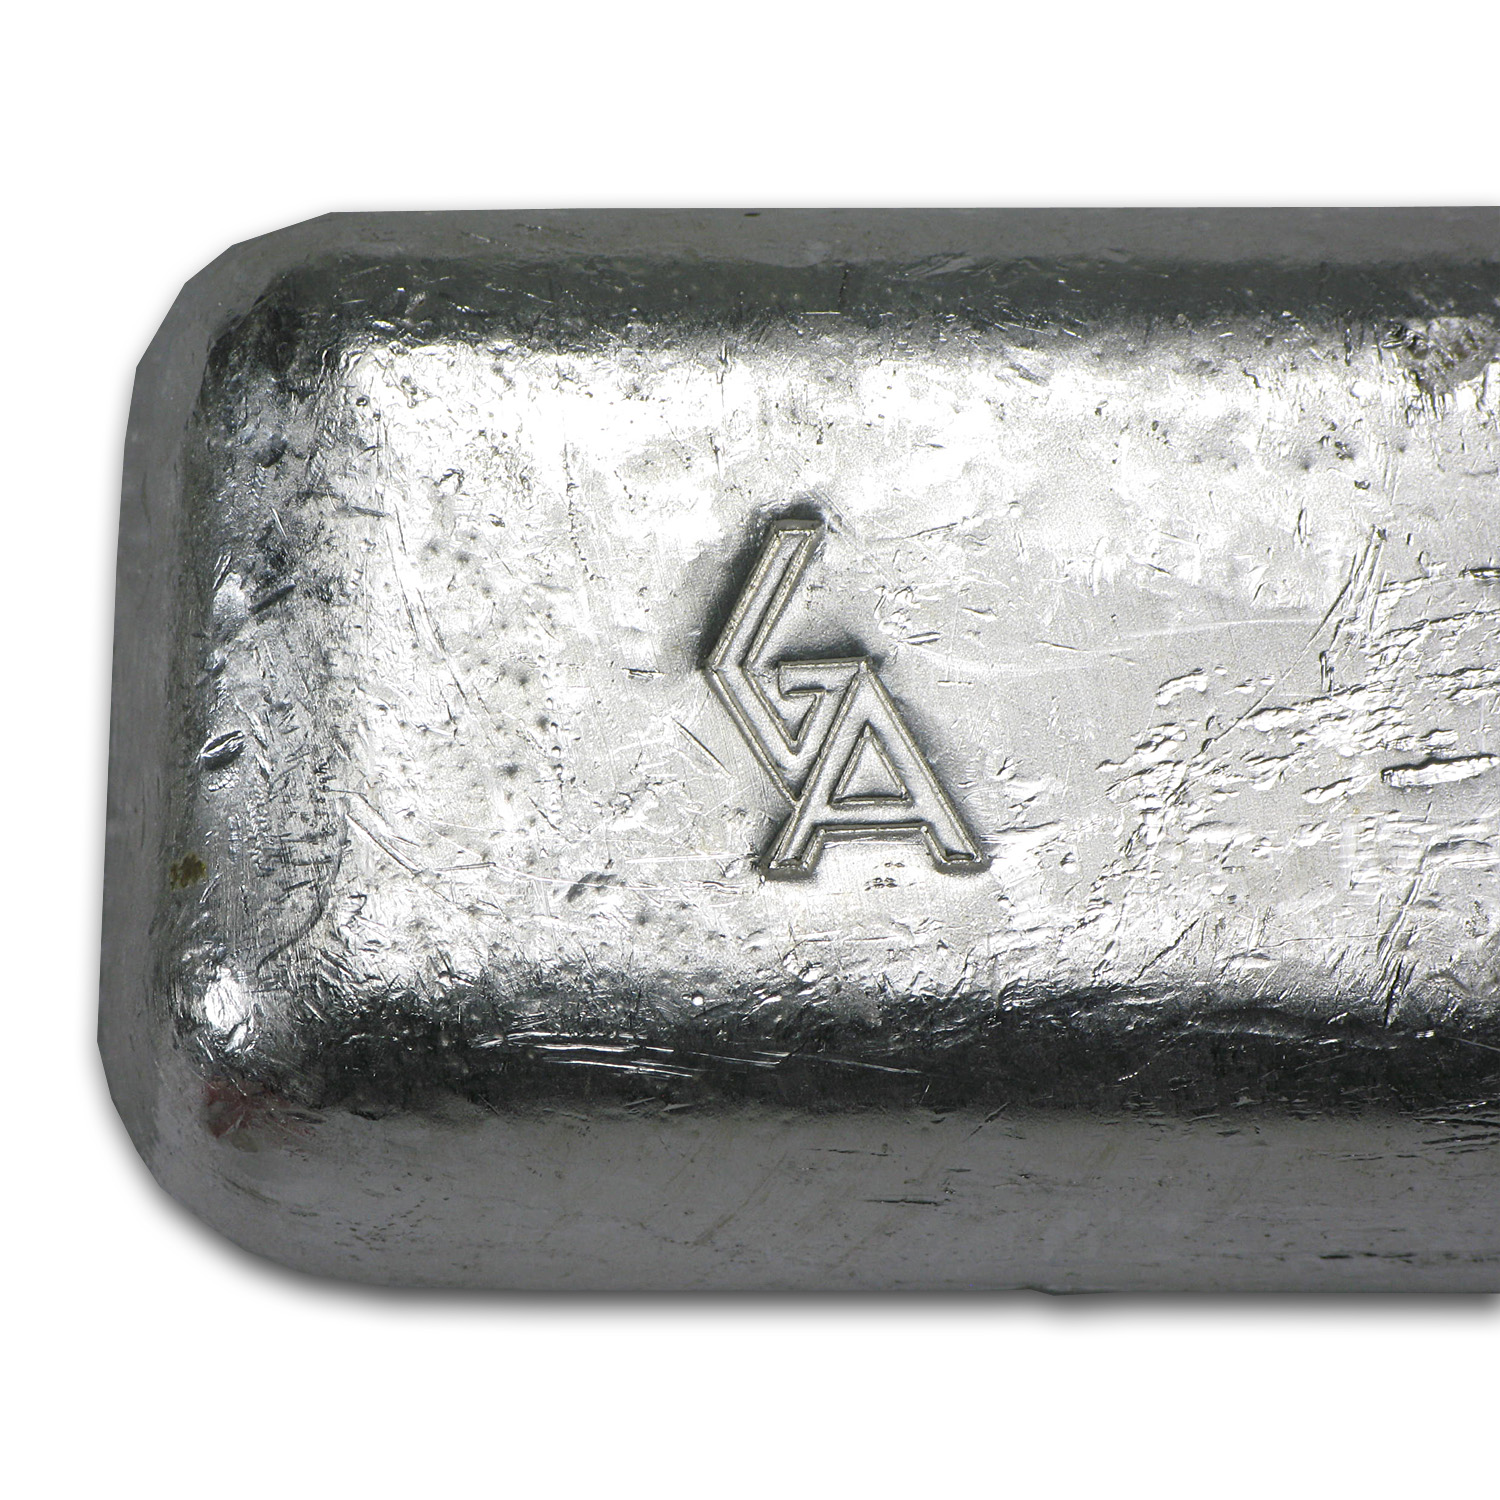 10 oz Silver Bars - Golden Analytical